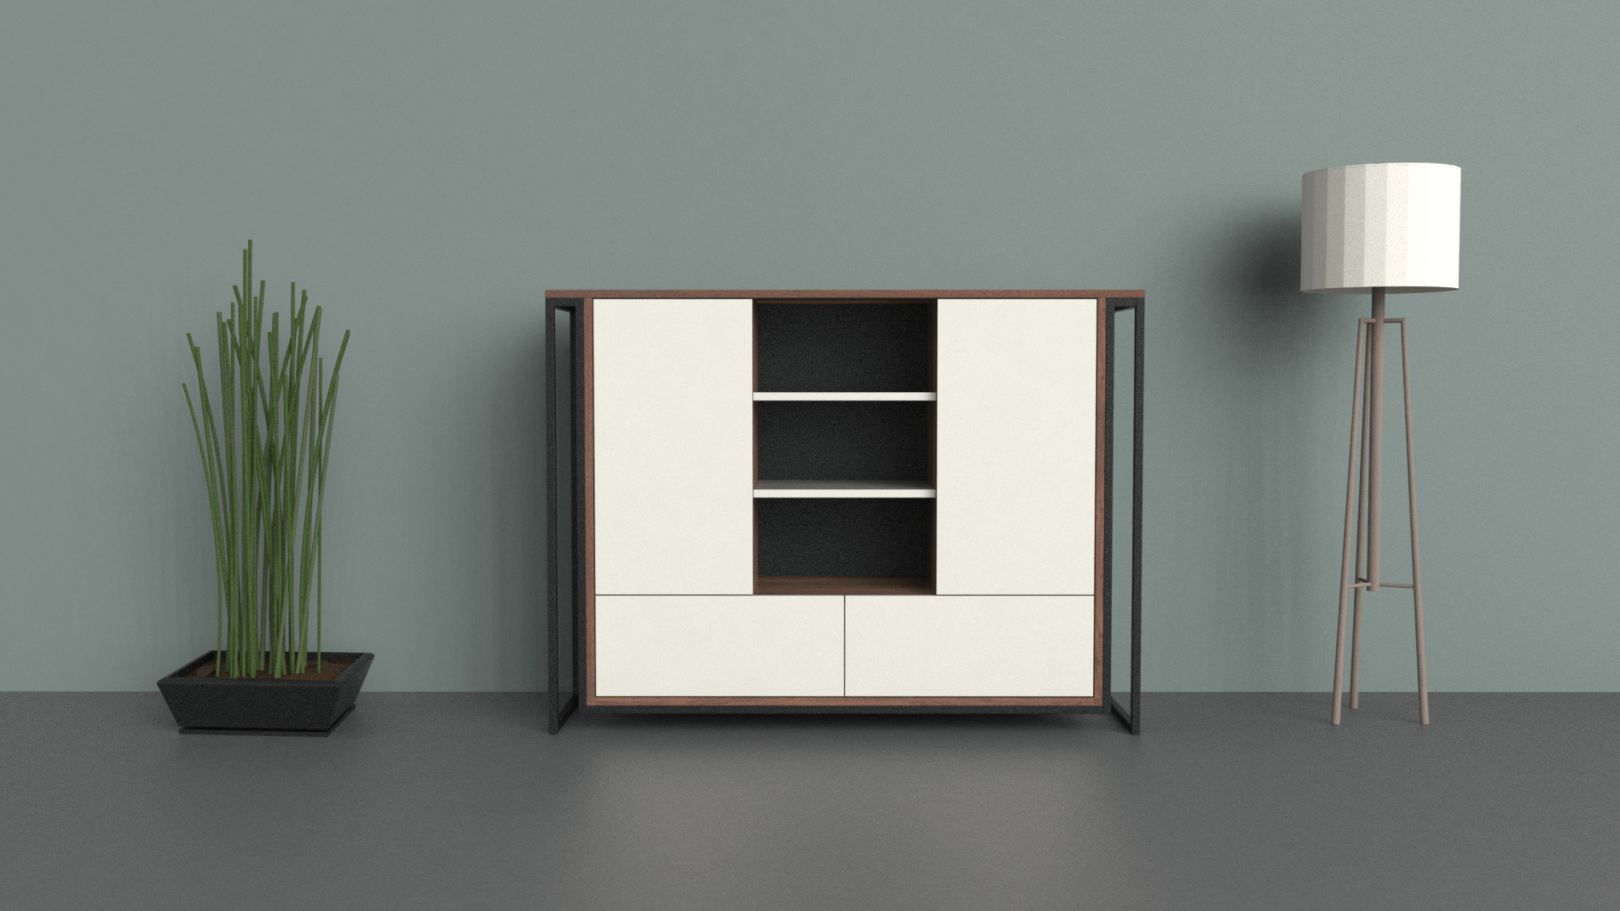 Highboard Schubfächer + Türen + Regal front-min